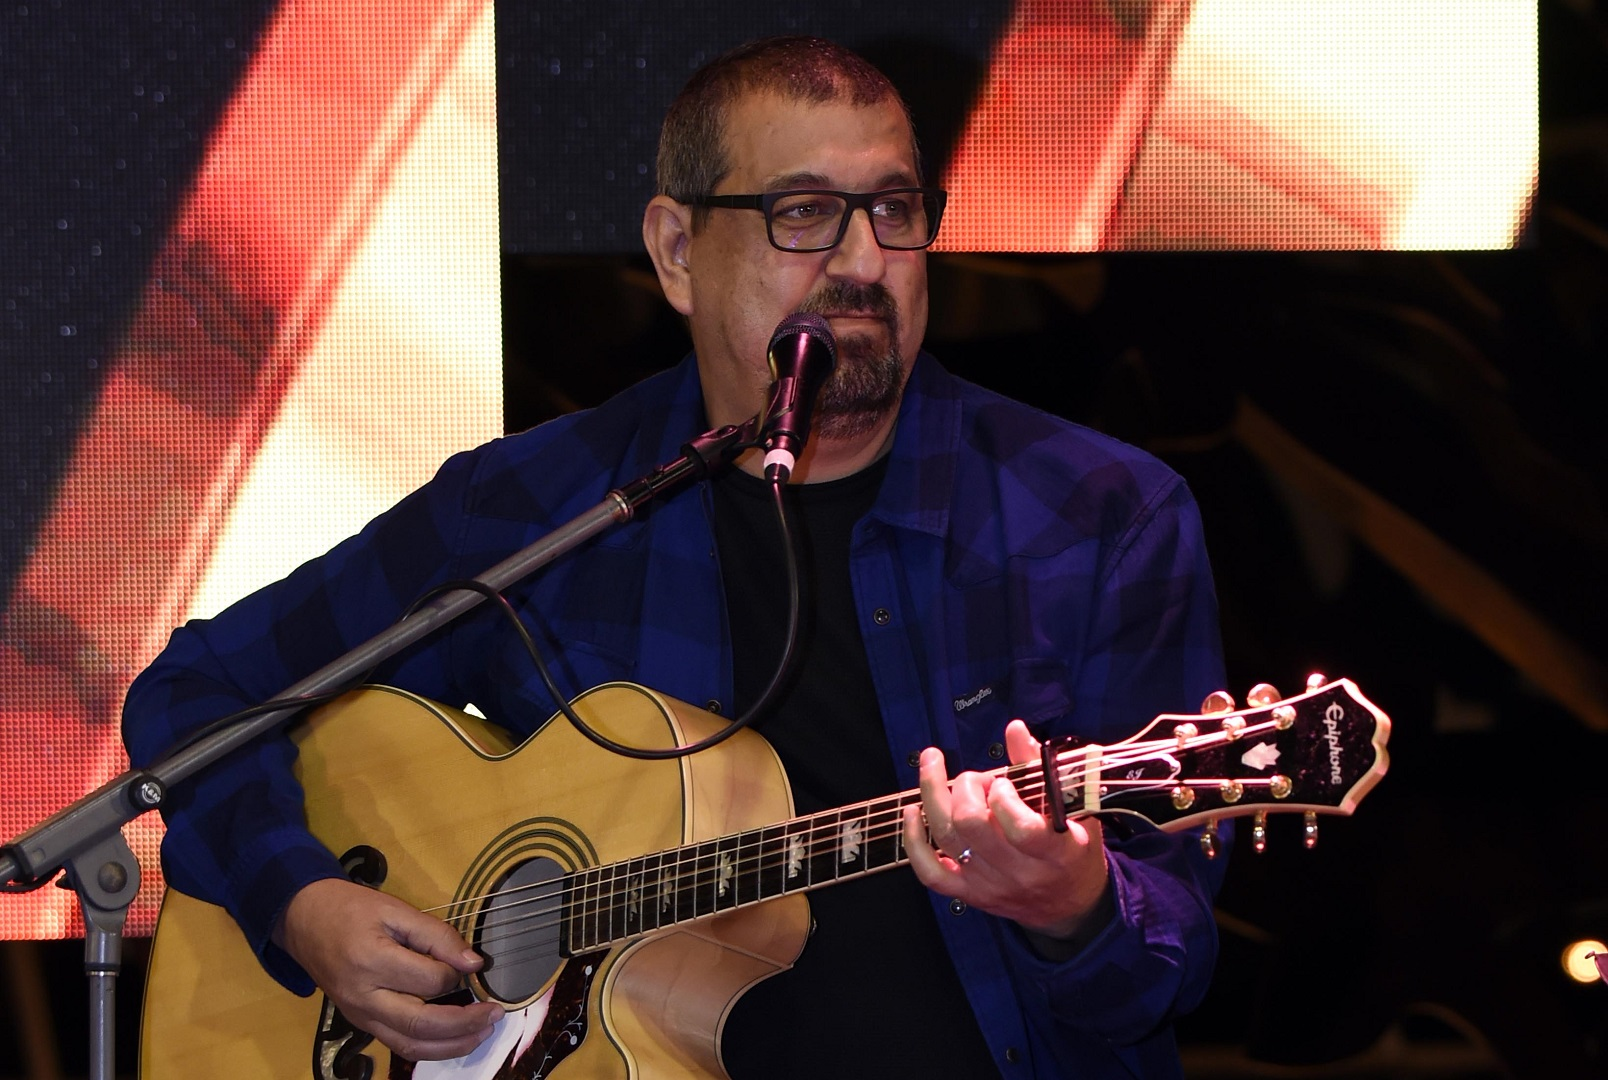 Sharjah World Music Festival 2018 in pictures